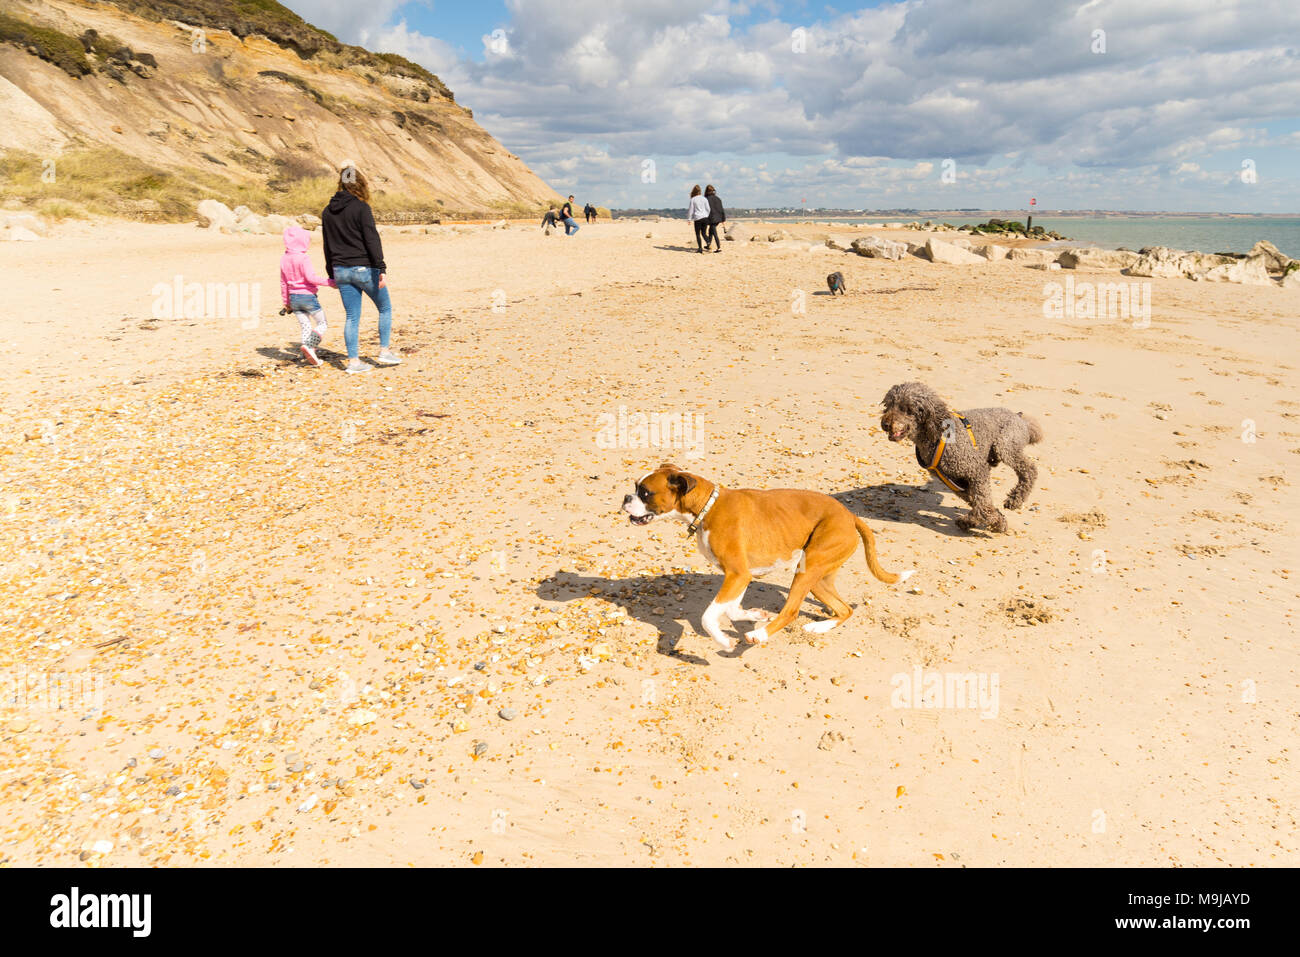 Hengistbury Head, Christchurch, Dorset, UK, 26th March 2018, Weather: Spring sunshine and blue skies on the south coast of England brings people out with their dogs for a walk along the pebble and sand beach. The headland that encloses and protects Christchurch harbour has Ancient Monument status and was declared as a Local Nature Reserve in 1990. Credit: Paul Biggins/Alamy Live News Stock Photo